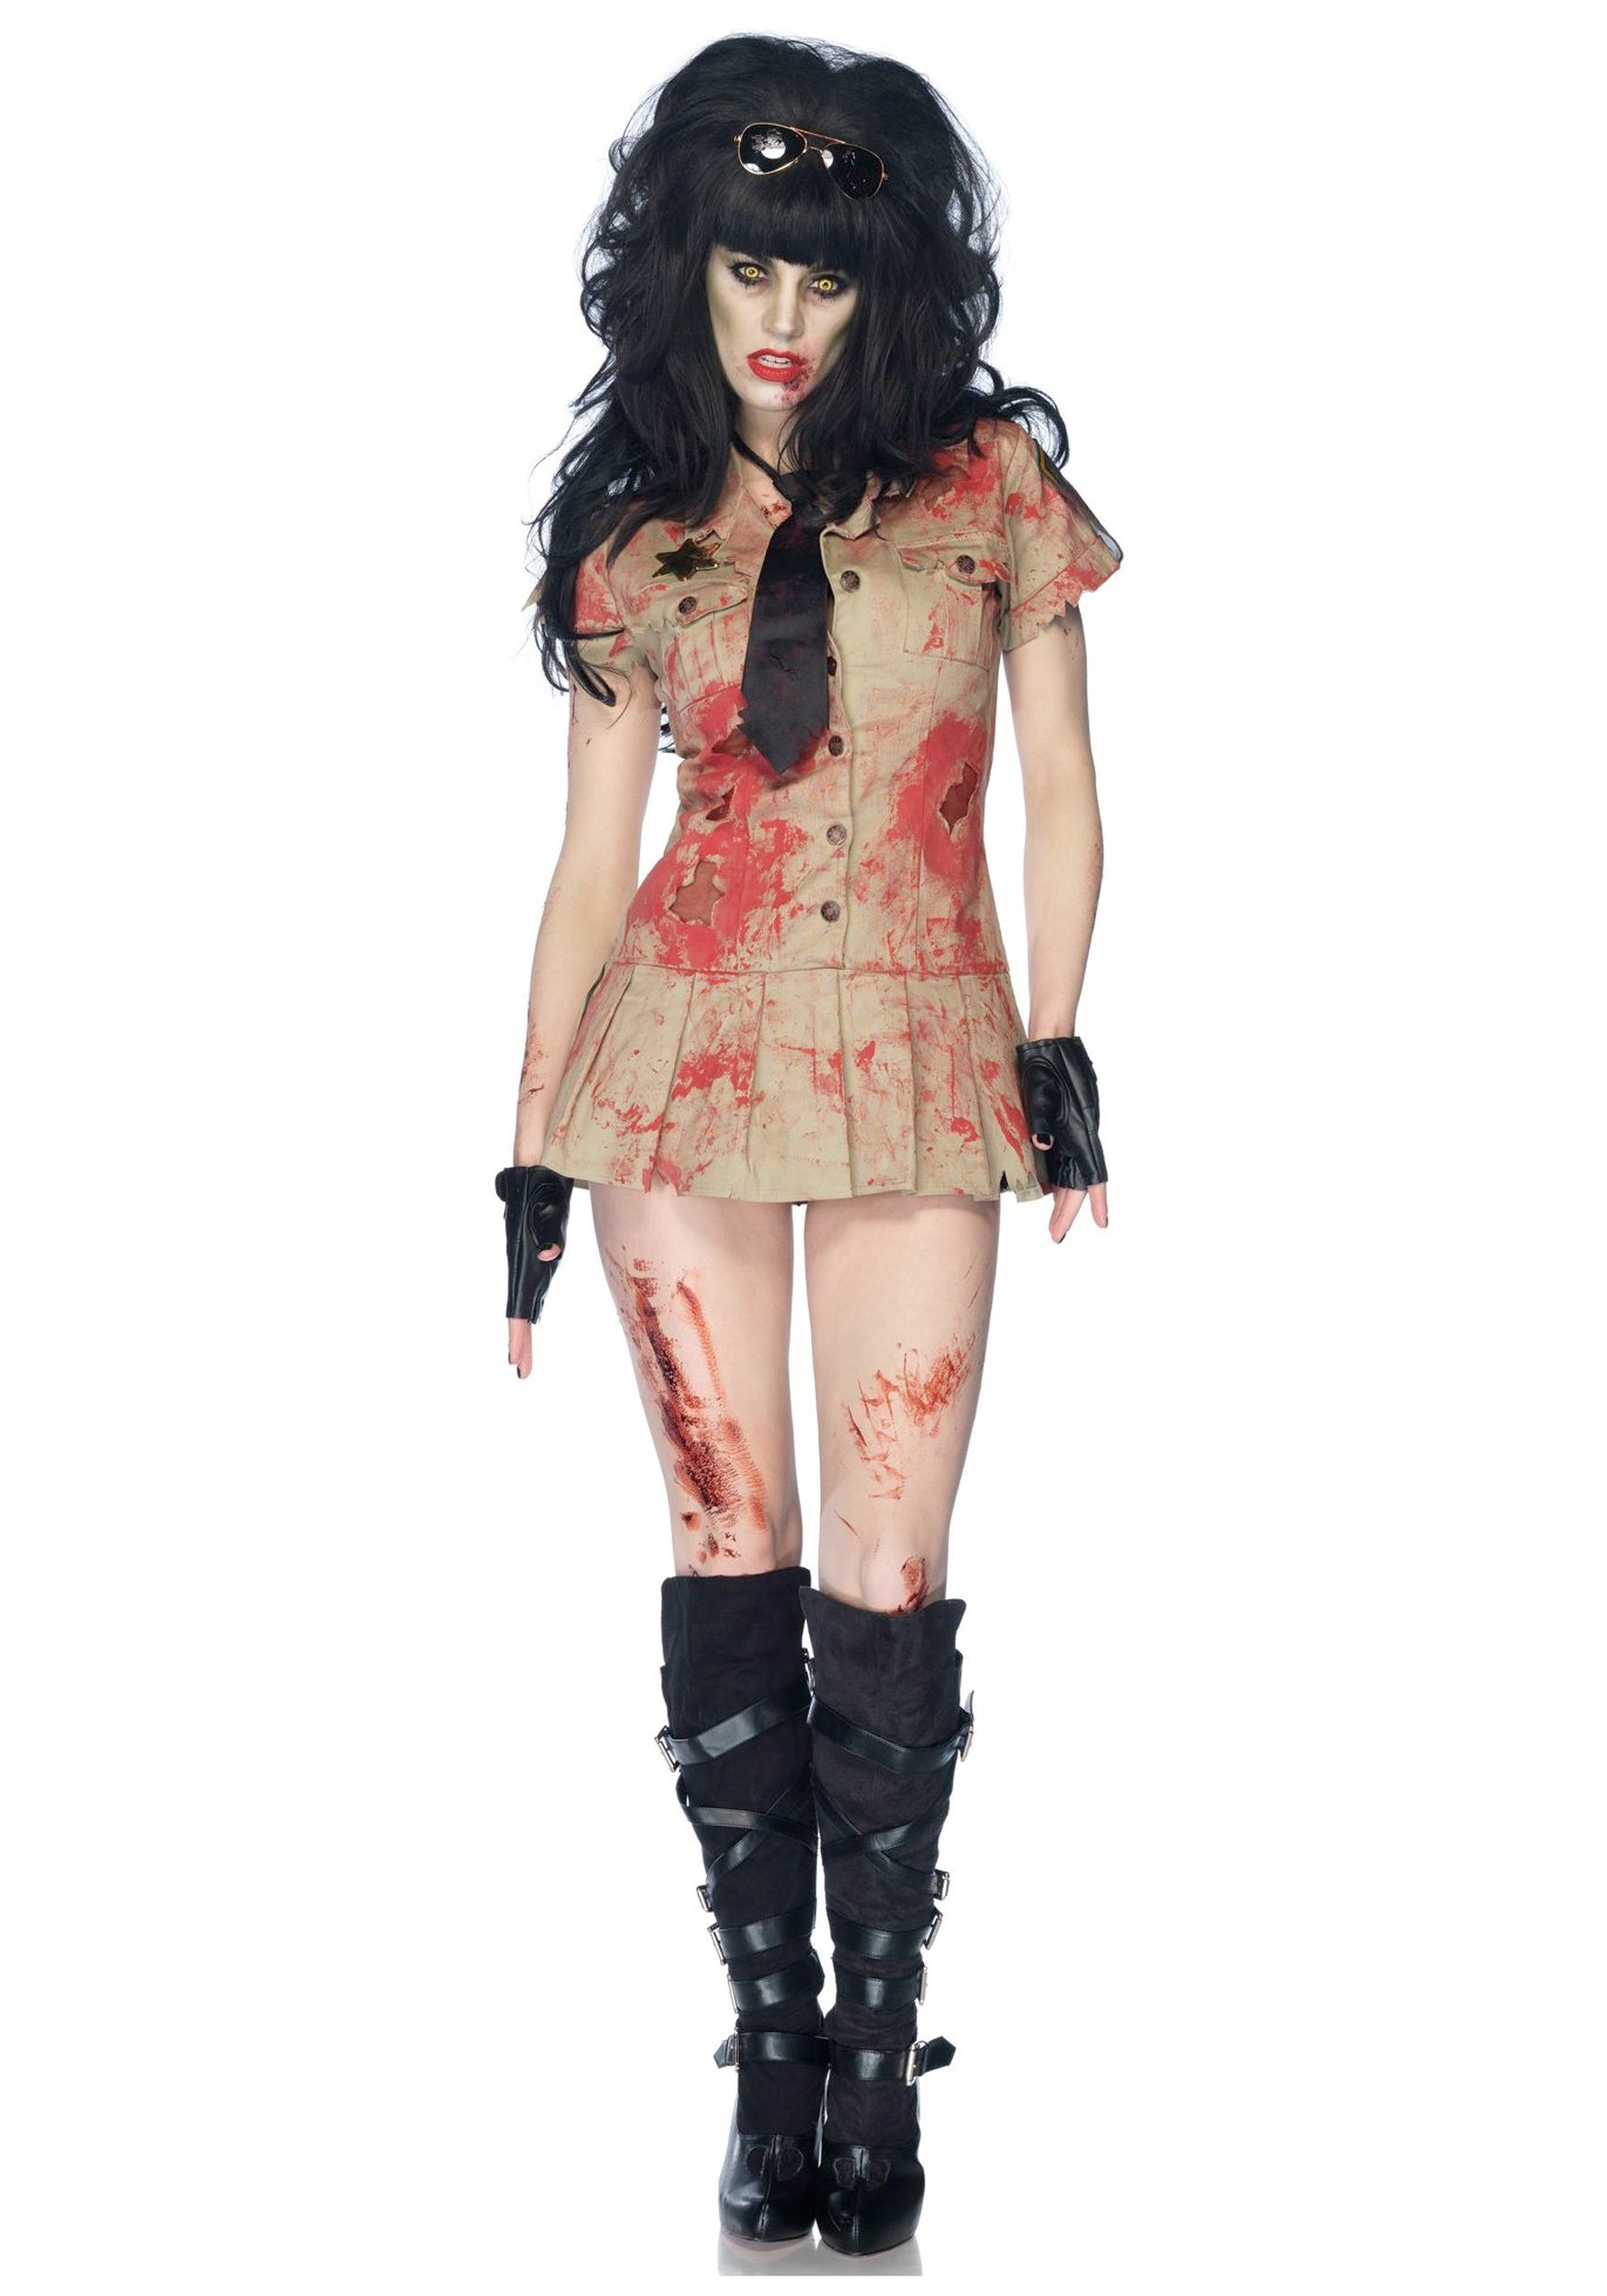 scary halloween costumes for women | home scary costume ideas zombie